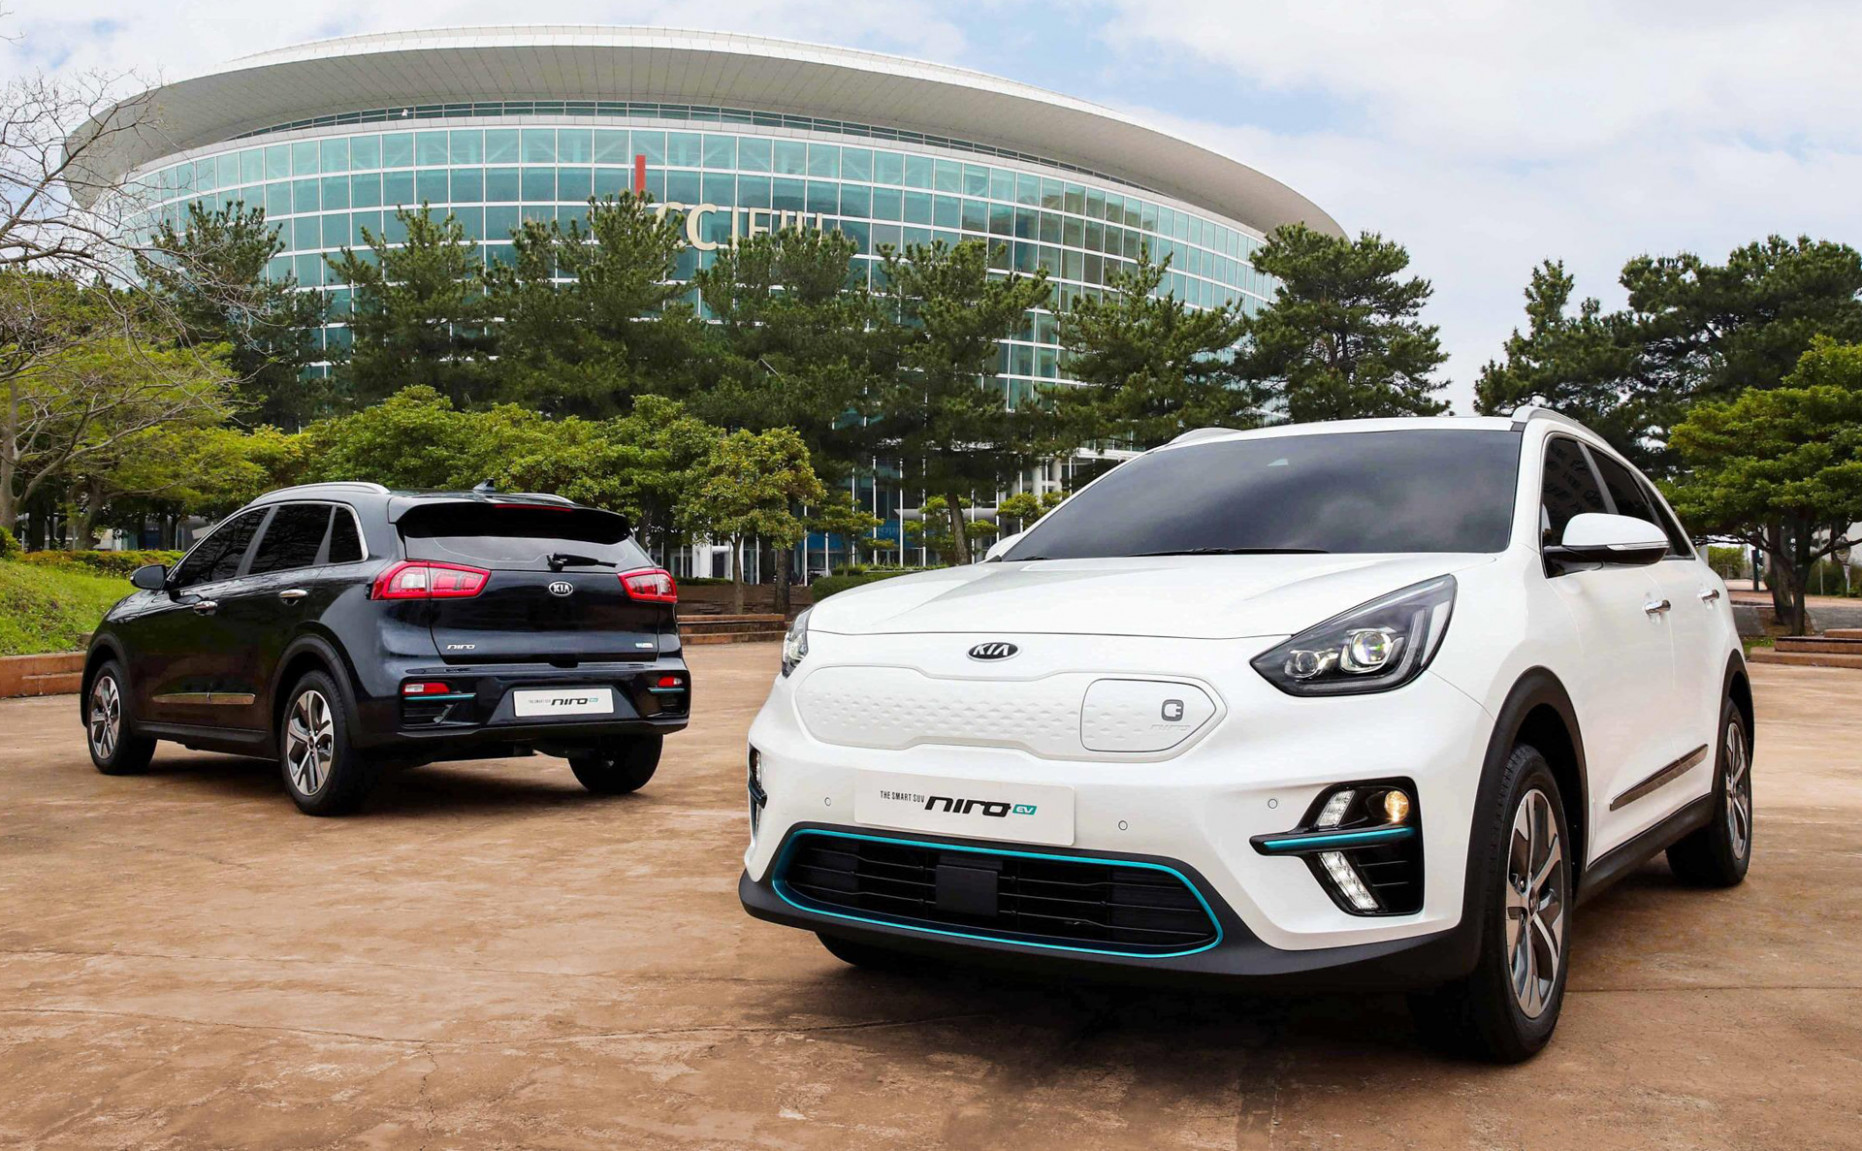 Kia to build electric cars in India by late 9 - kia electric cars in india 2020